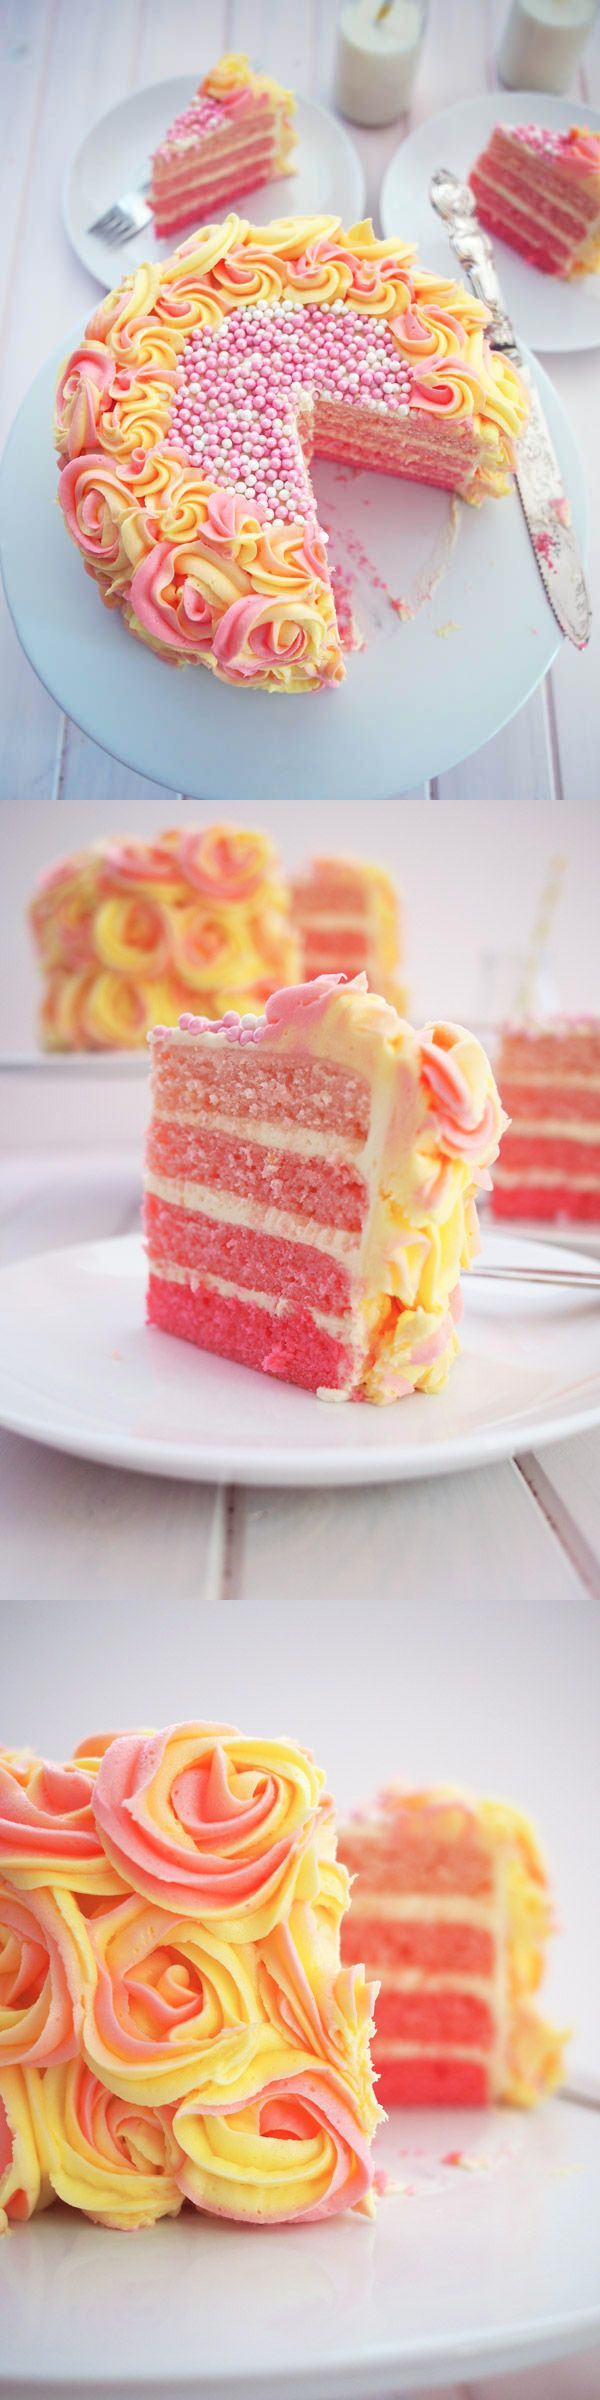 pink lemonade cake recipe layers spring summer icing birthday #bakingday